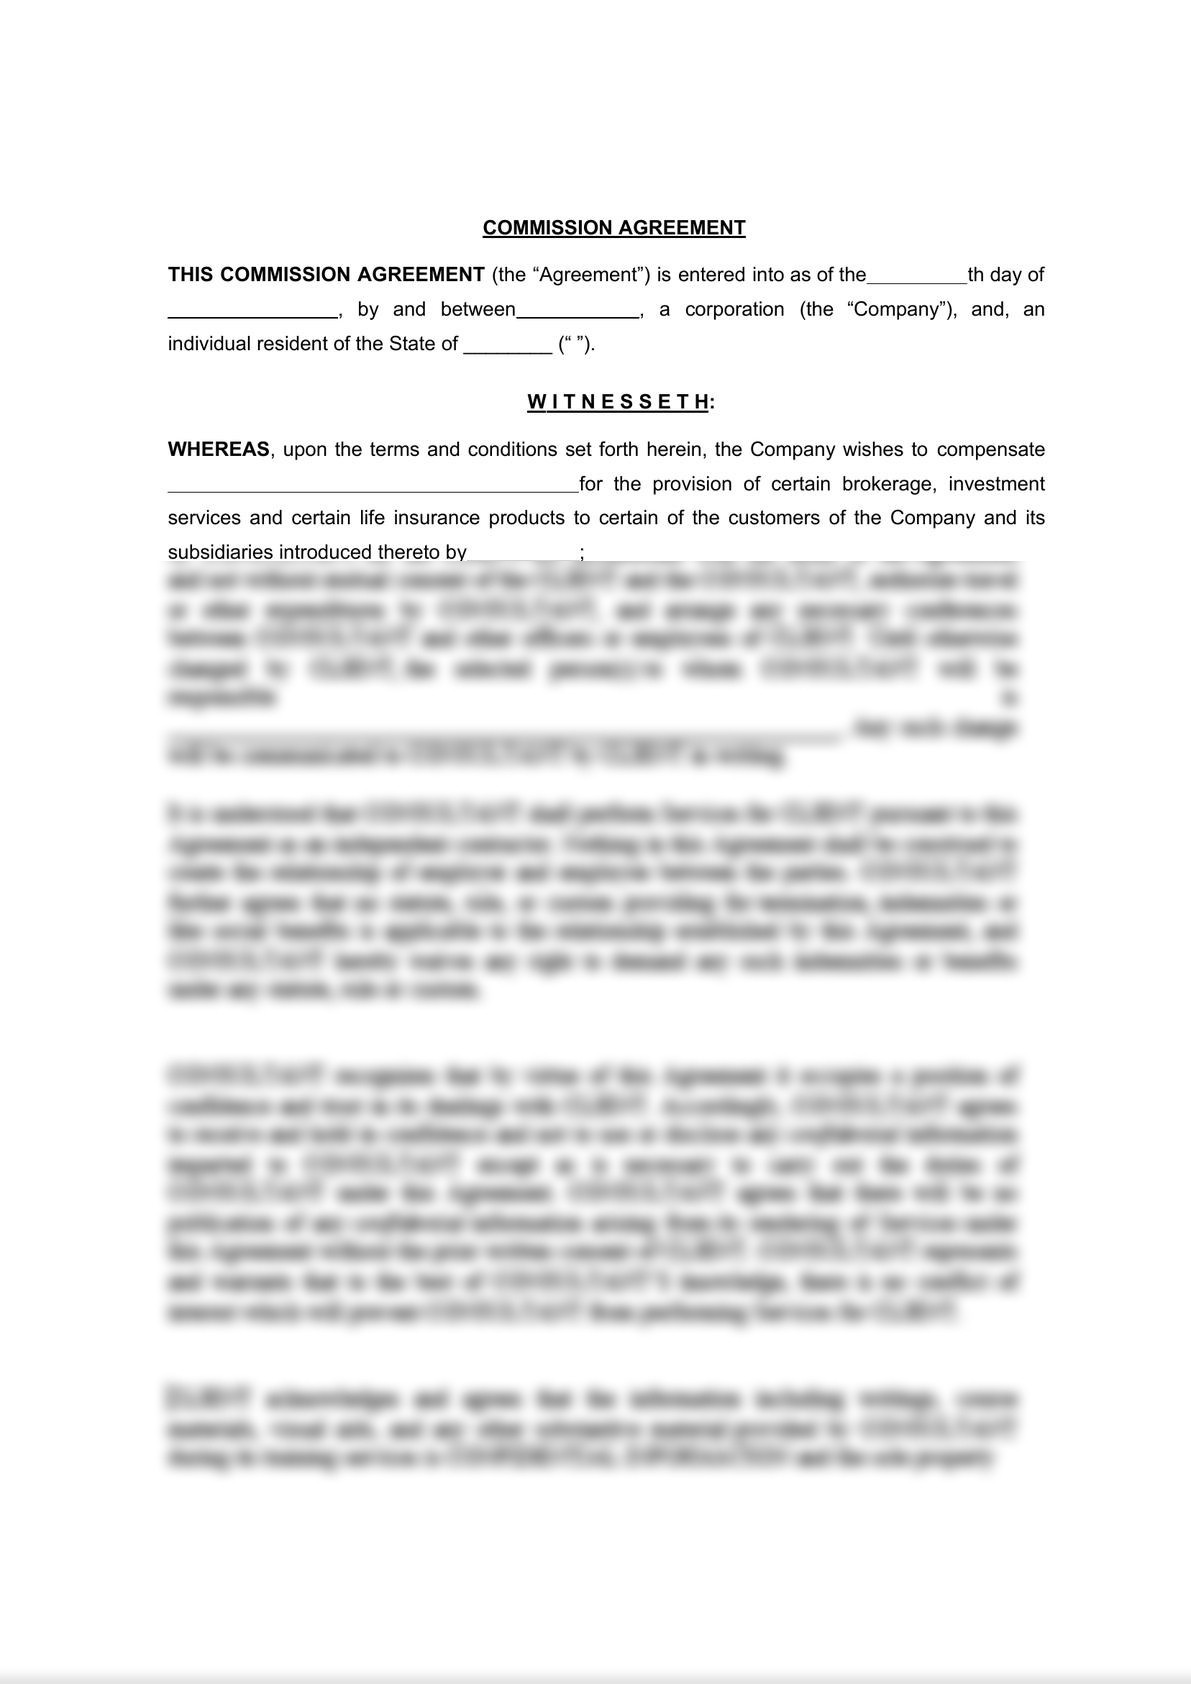 General Commission Agreement-0